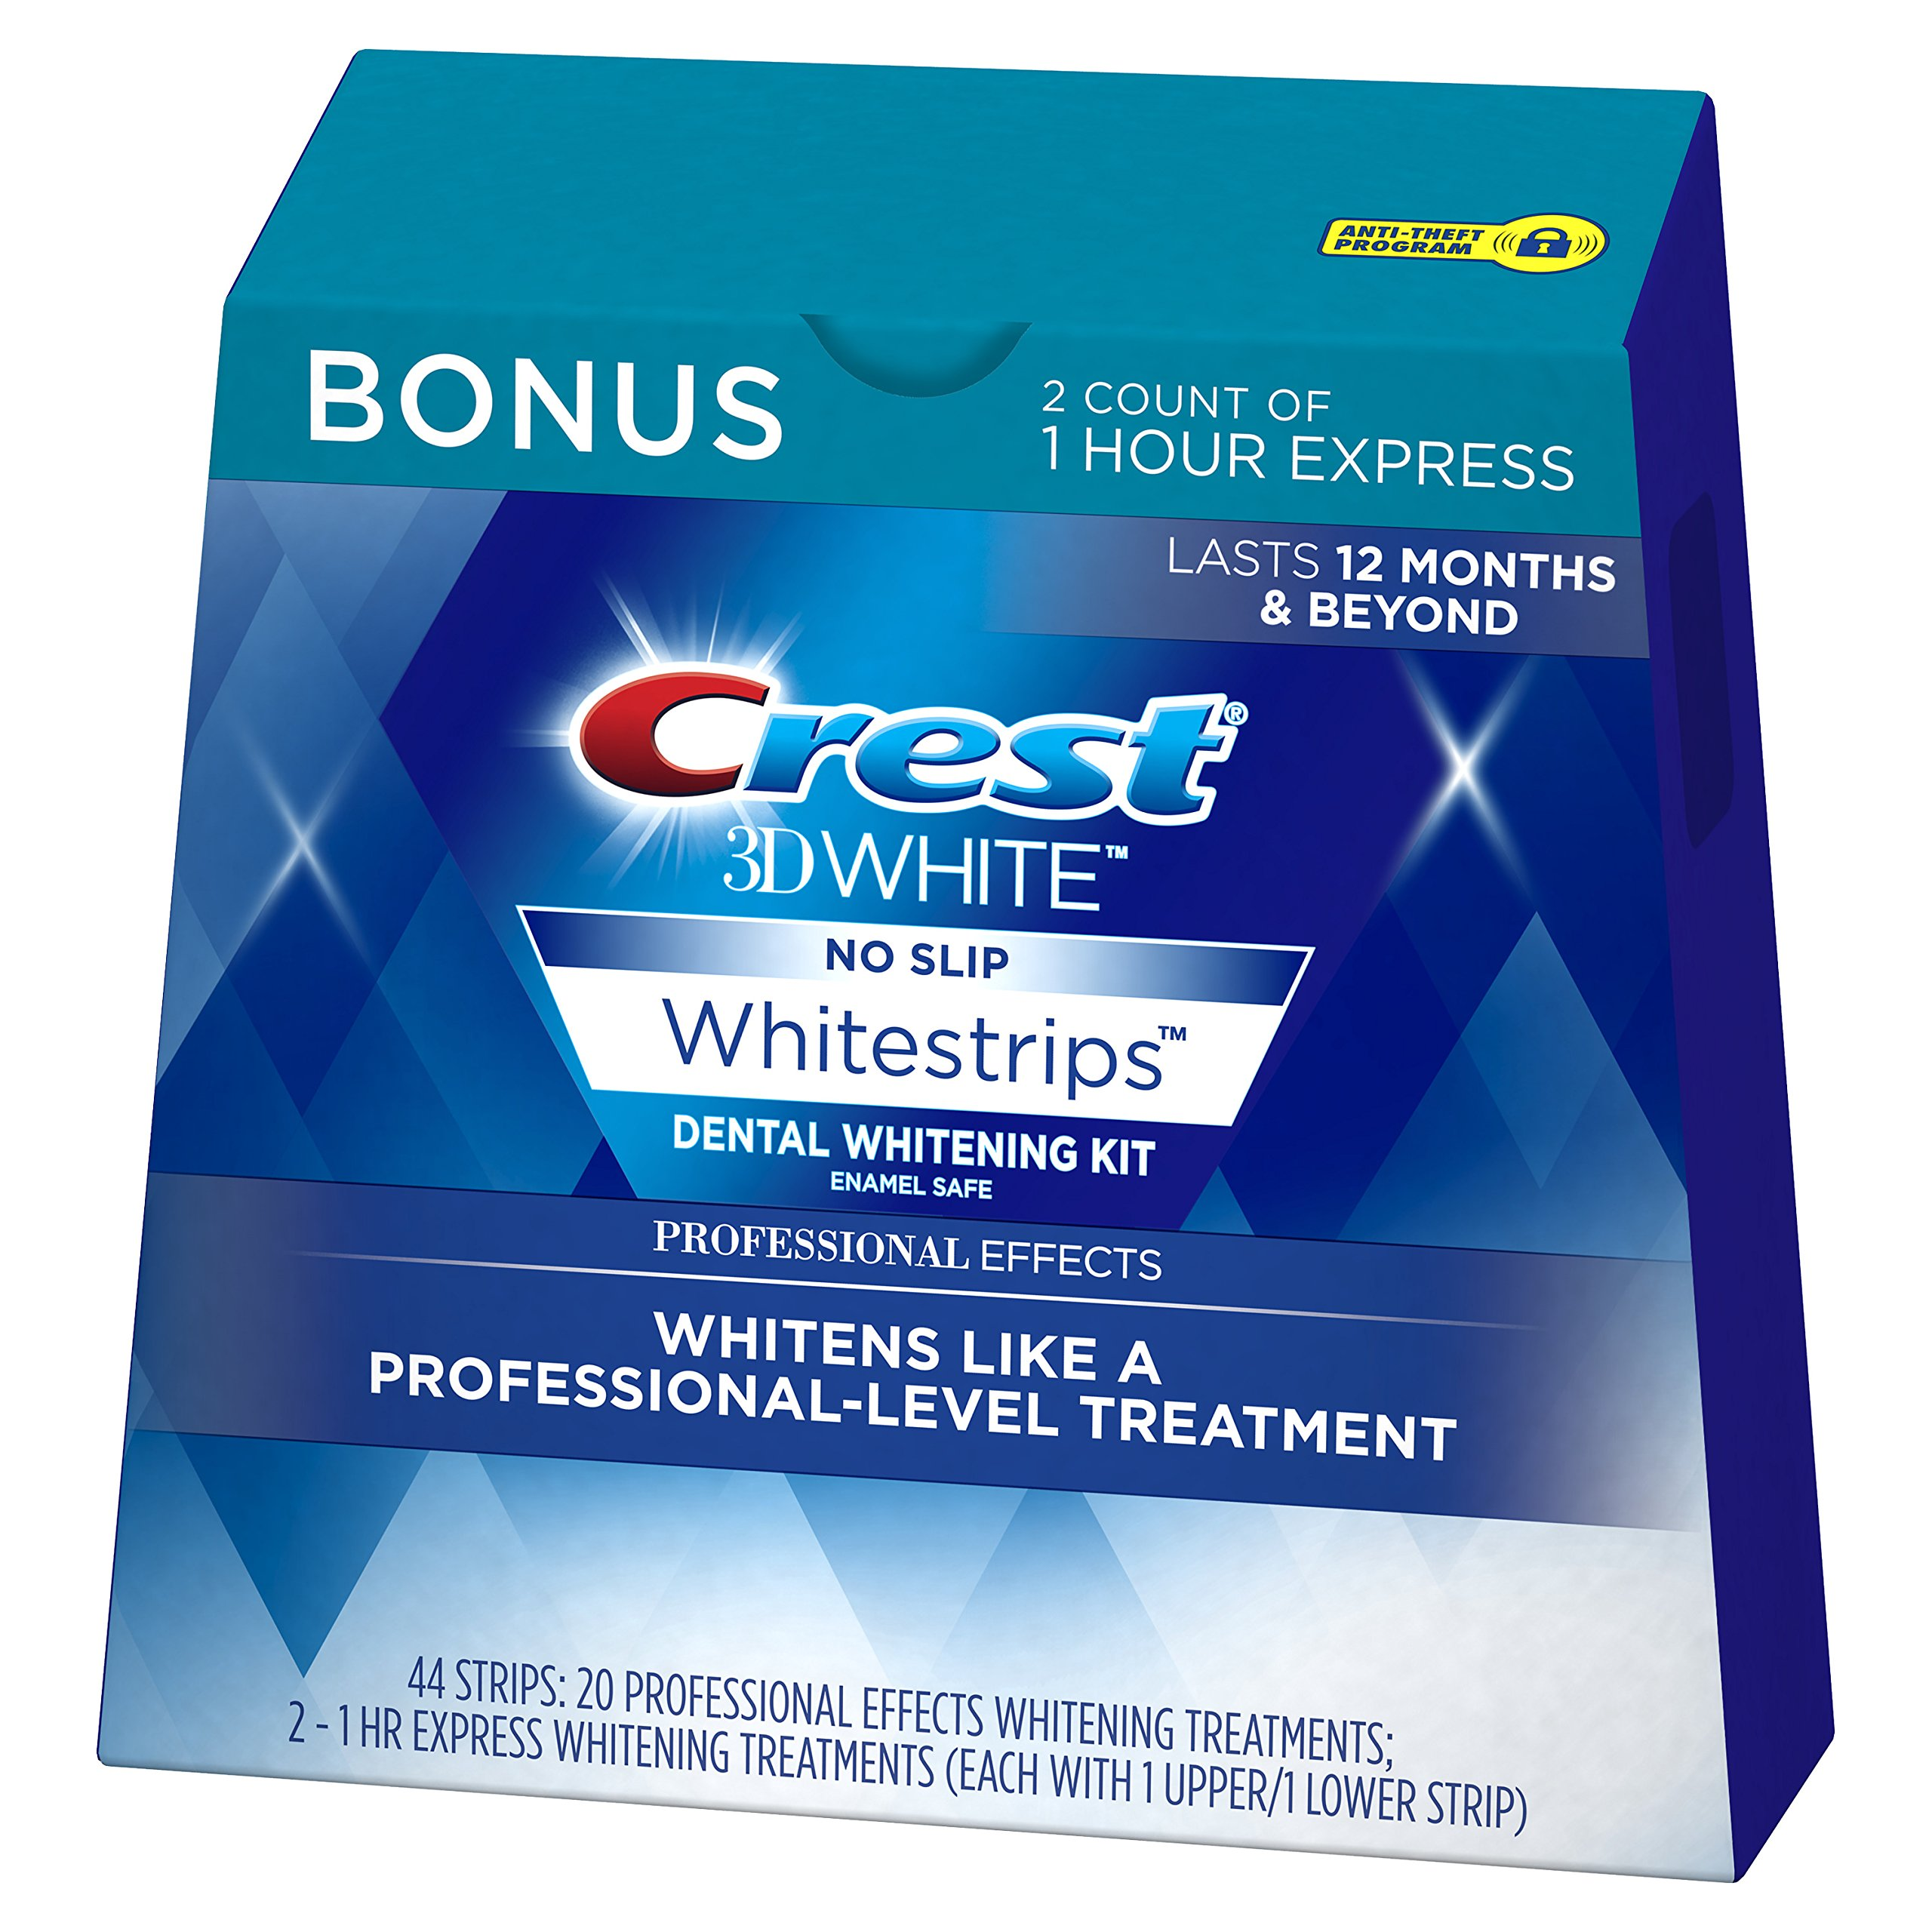 Crest 3D White Professional Effects Whitestrips Whitening Strips Kit, 22 Treatments, 20 Professional Effects + 2 1 Hour Express Whitestrips by Crest (Image #3)